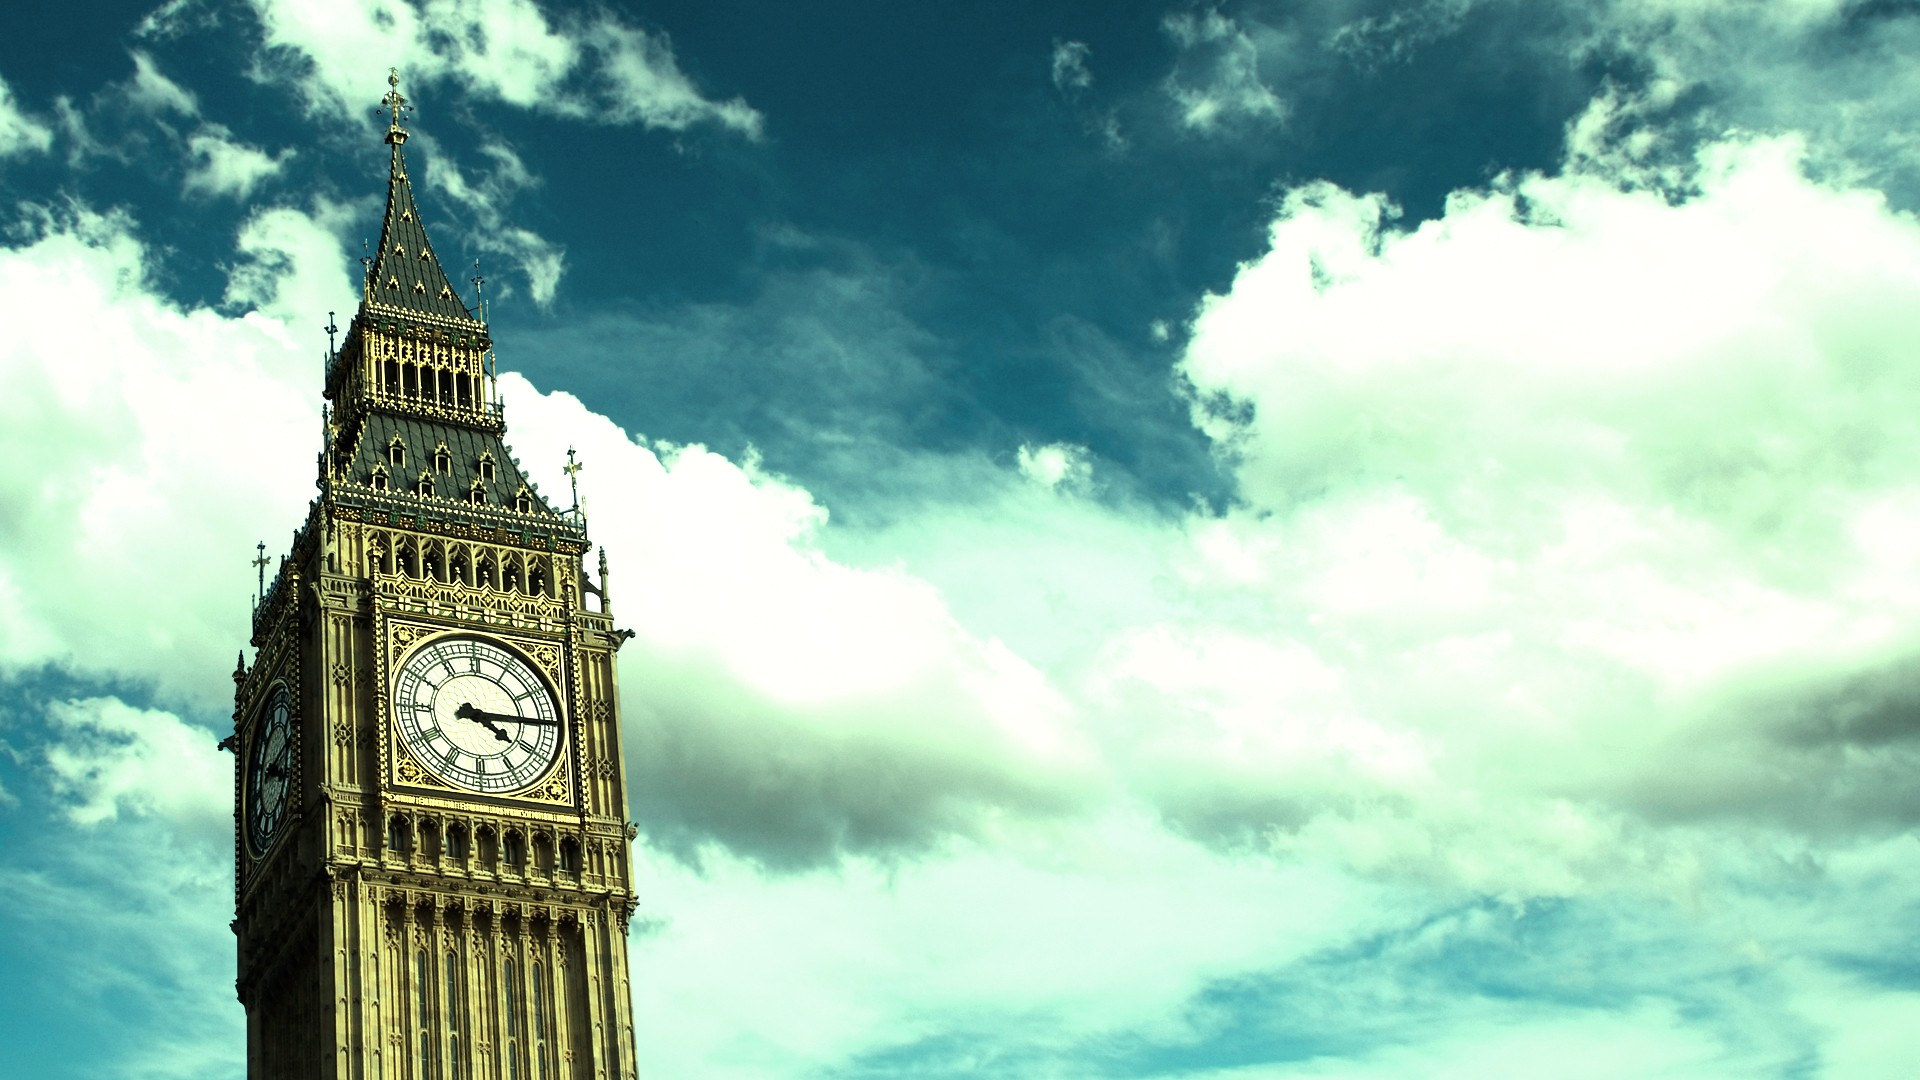 General 1920x1080 Big Ben London England architecture building sky cityscape clocks clouds clocktowers cyan